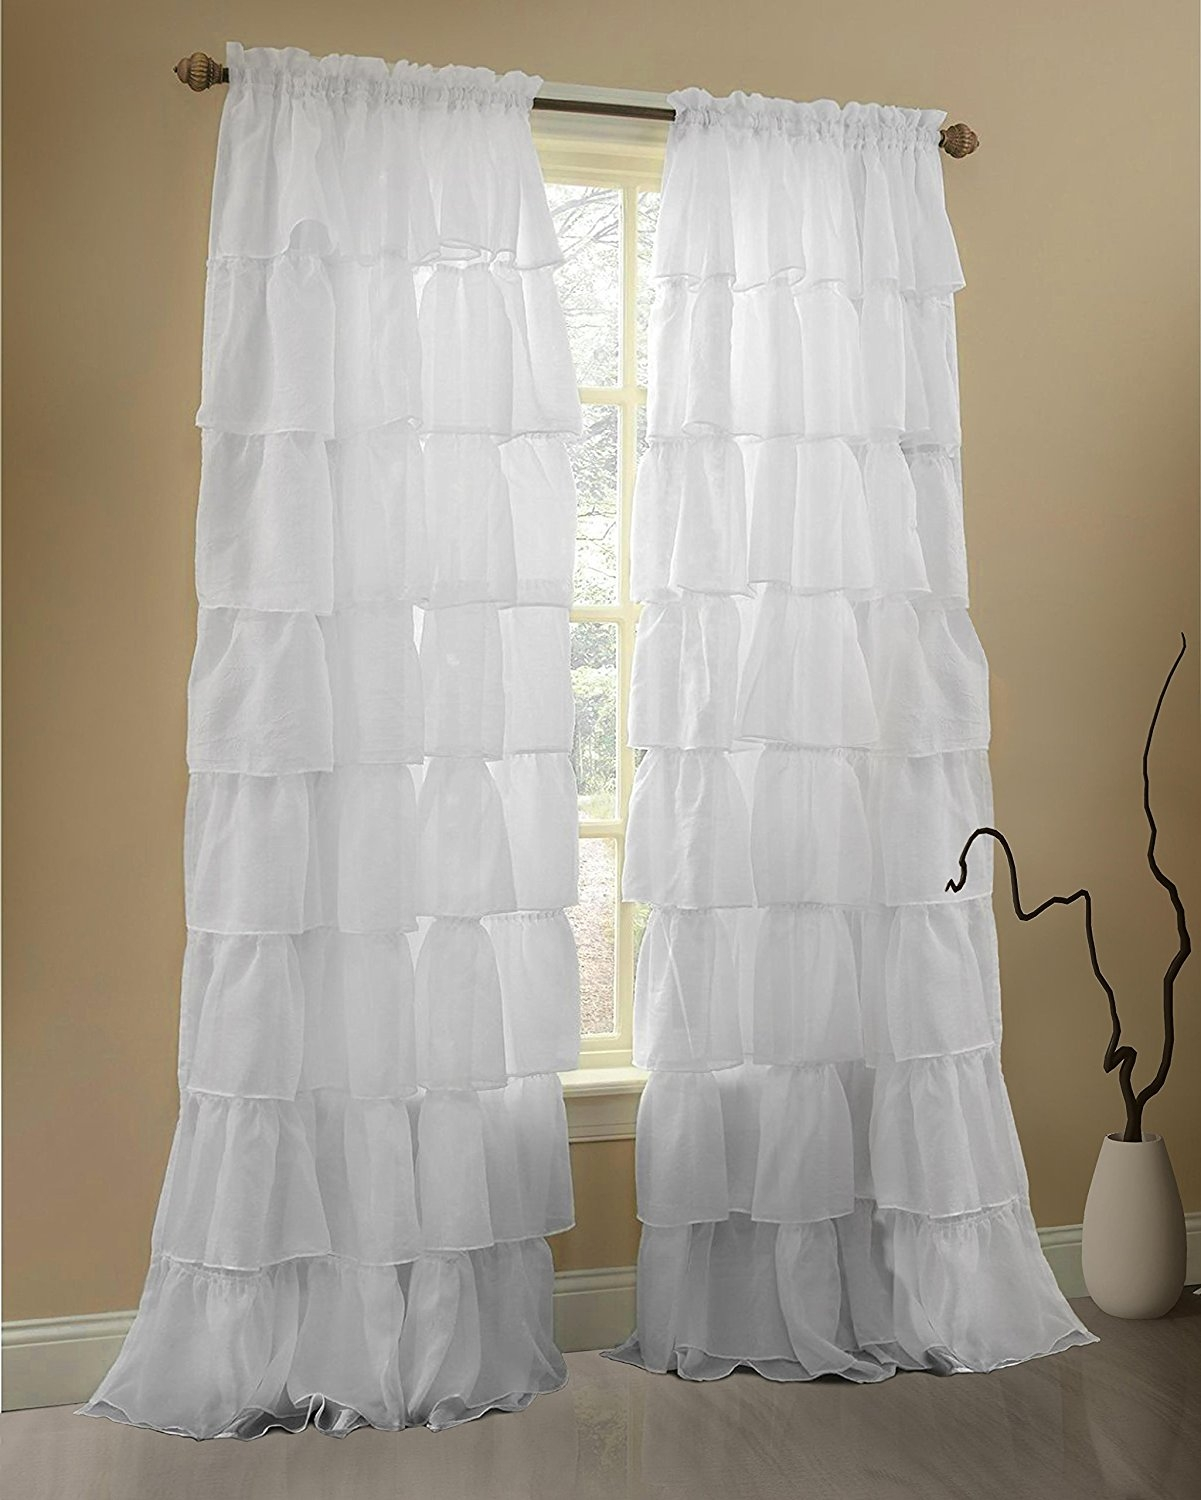 Amazon Gee Di Moda Ruffle Curtains Rod Pocket Window With For White Ruffle Curtains (View 17 of 25)